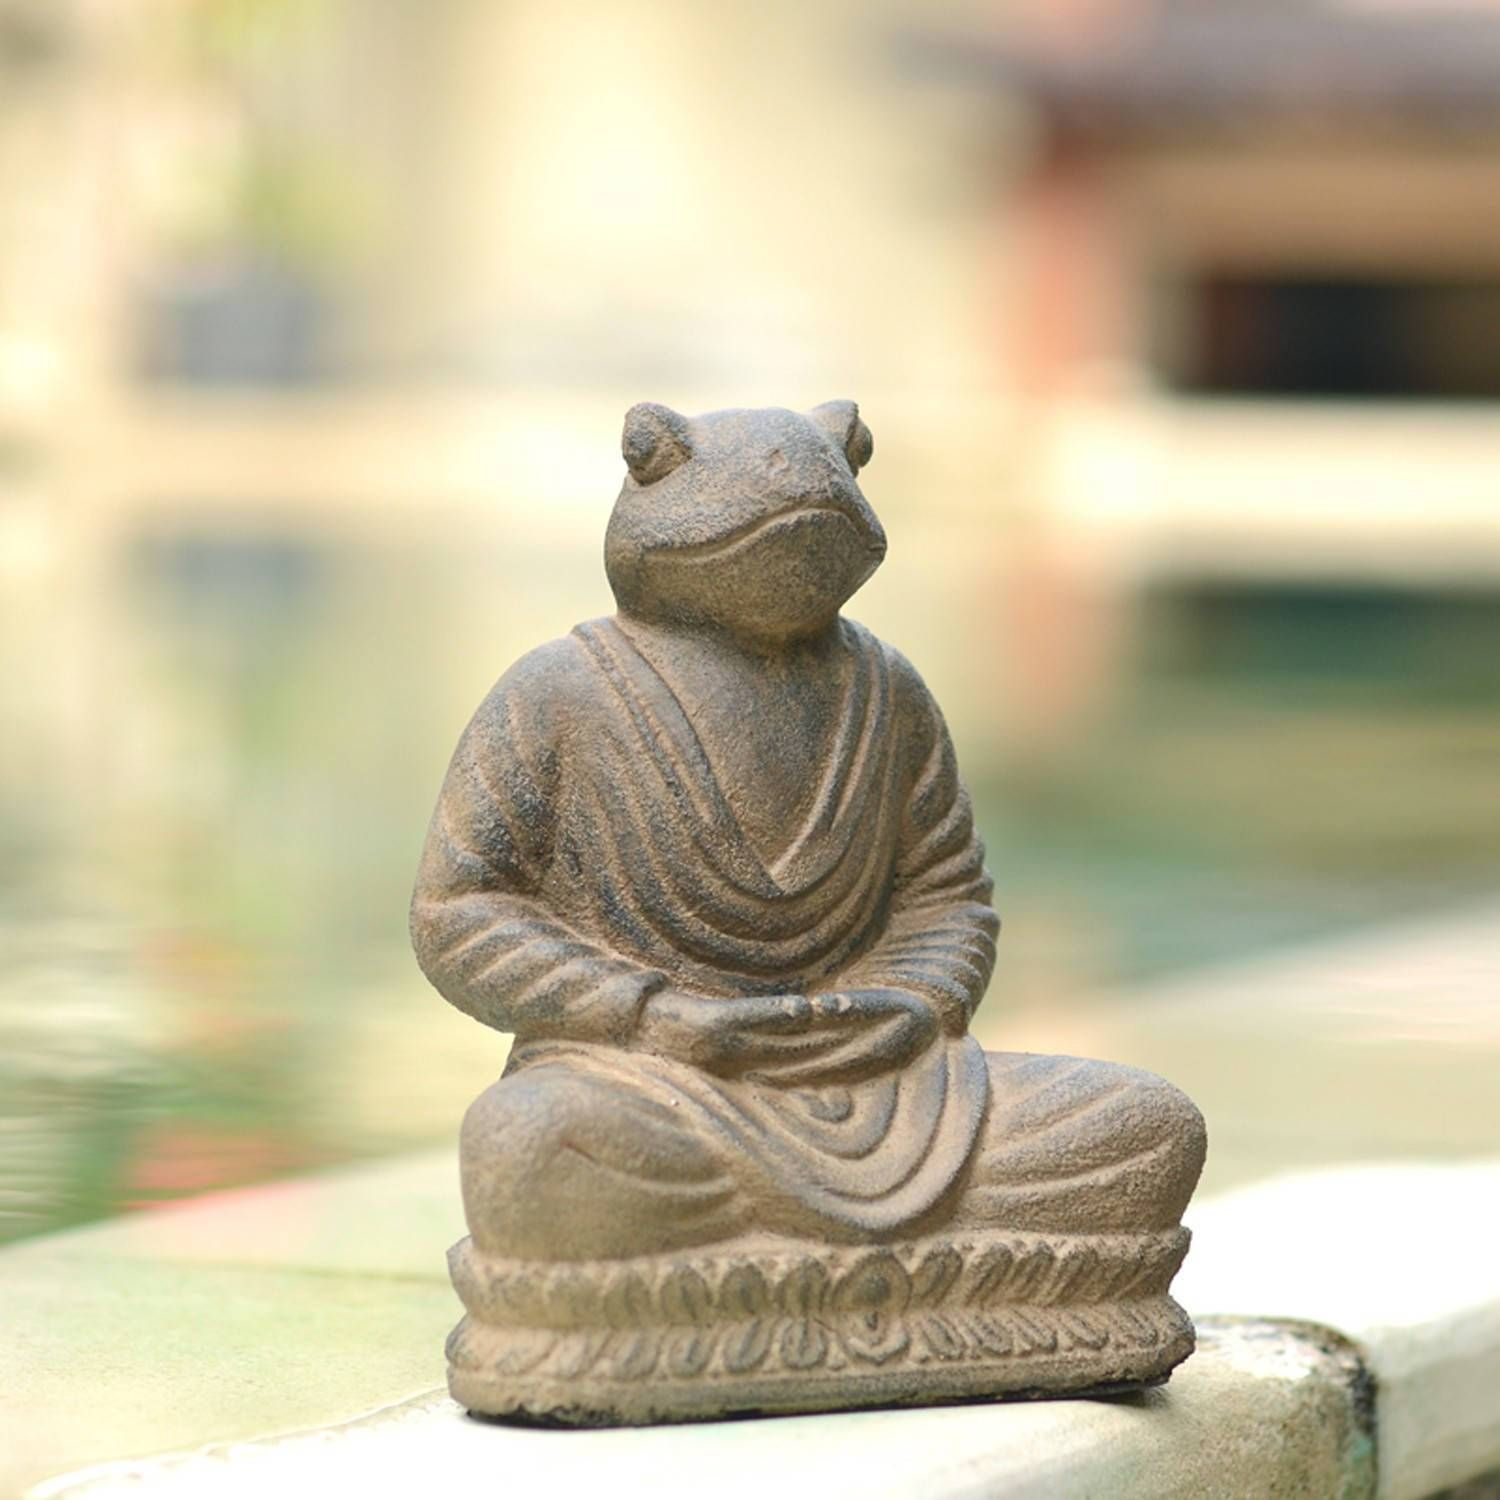 Perfect For Your Office Desk Or Garden This Adorable Statue Features A Frog Meditating Handmade By Artisans In Indonesia T Frog Statues Statue Buddha Statue